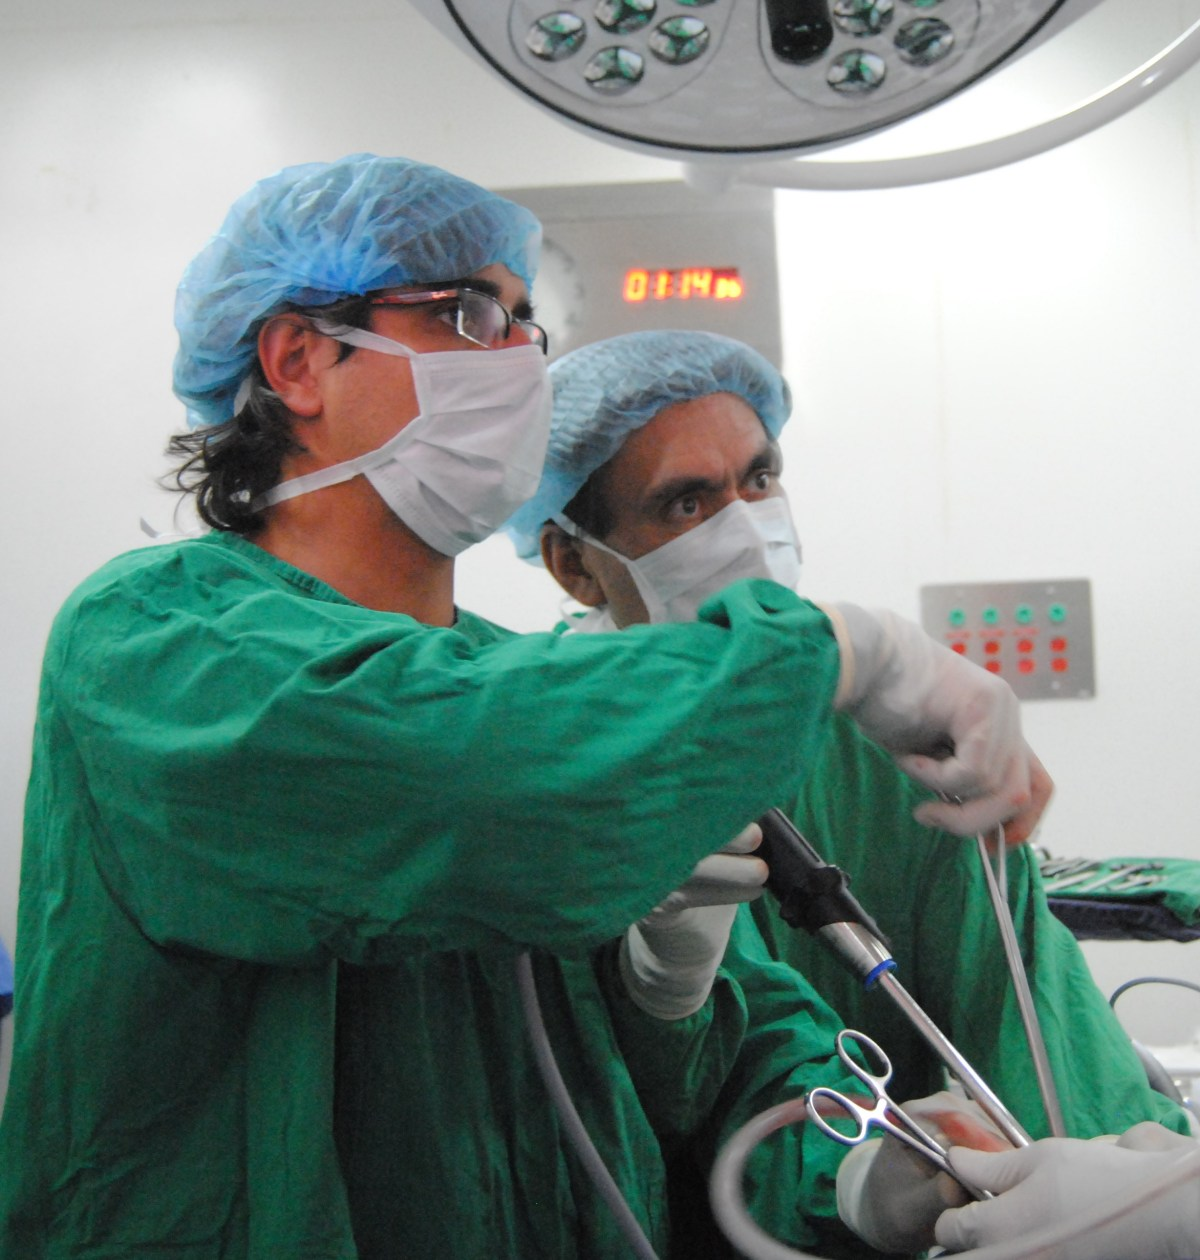 Credentialing versus certification for minimally invasive thoracicsurgery?